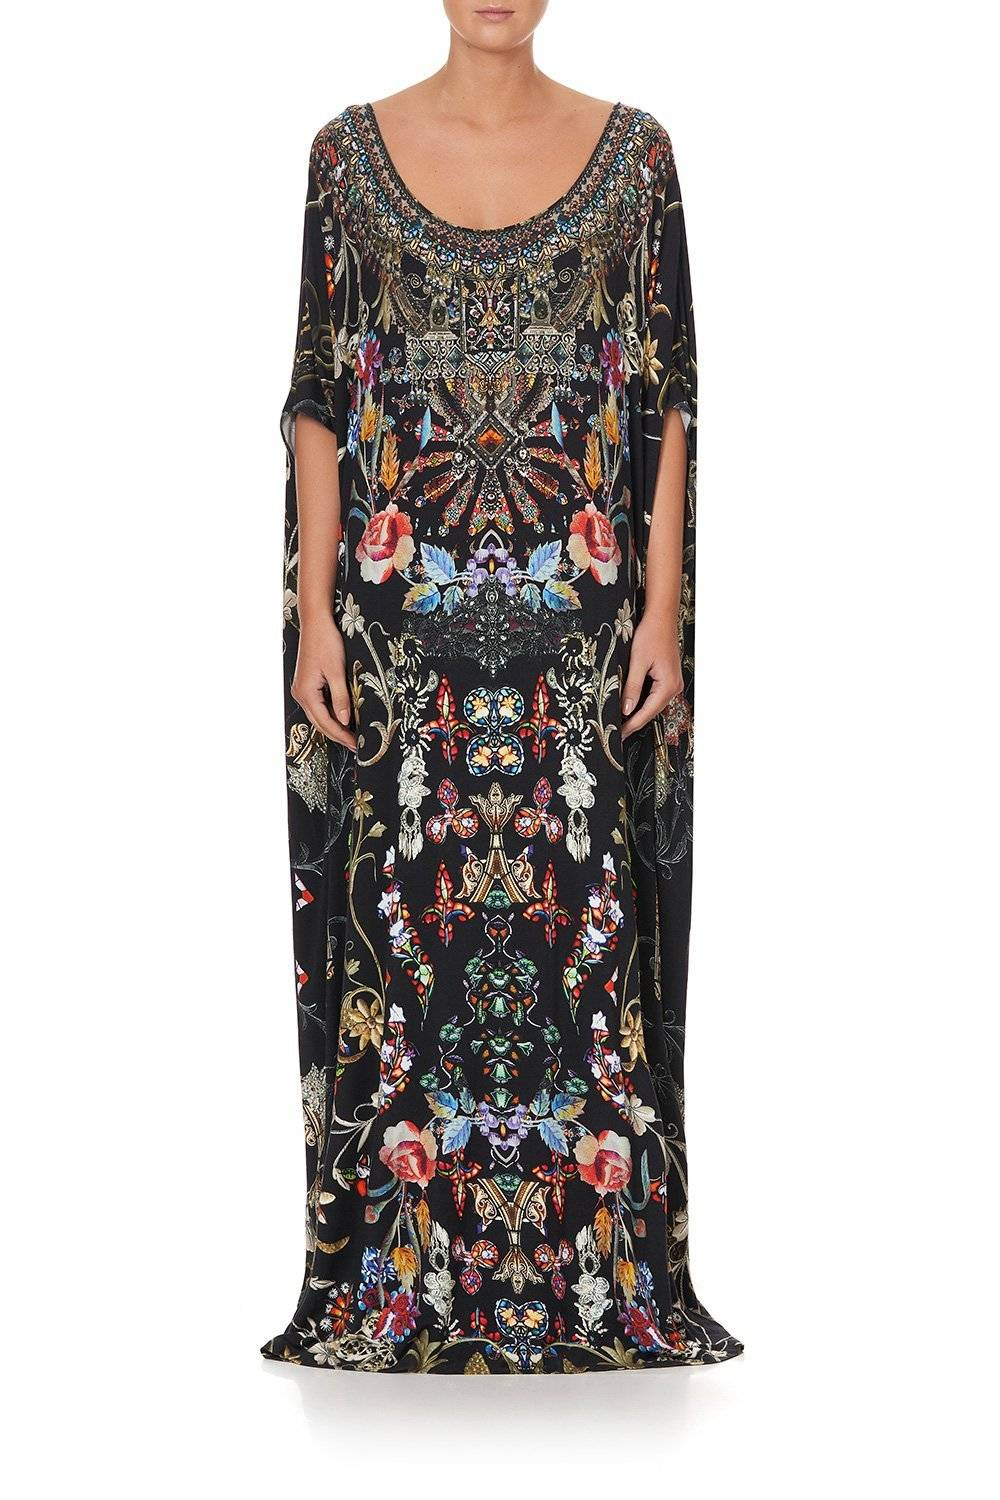 CAMILLA BLACK ROUND NECK KAFTAN WITH COLOURFUL DETAILING